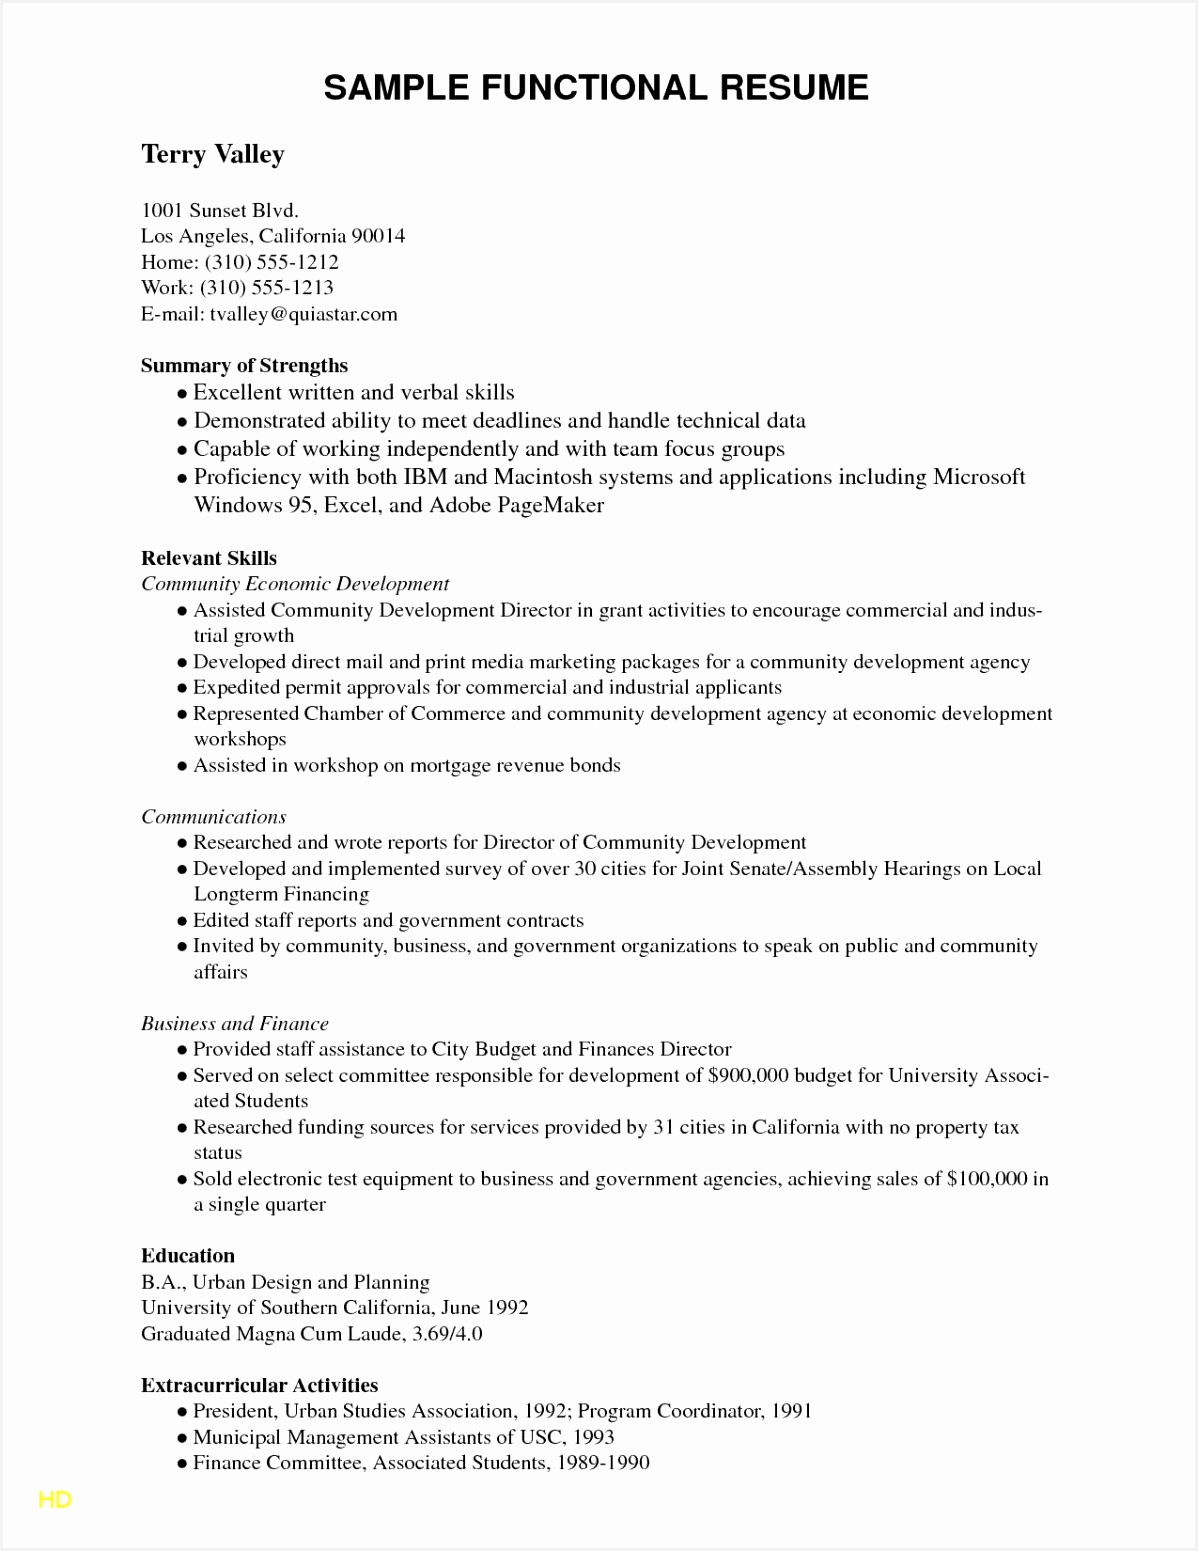 Microsoft Trainer Sample Resume Qxqav Fresh Sample Resume for Ca Articleship Training Free Template Design Of Microsoft Trainer Sample Resume Bvgrh Unique Sample Pitch for Resume Popular Good Examples Resumes Inspirational